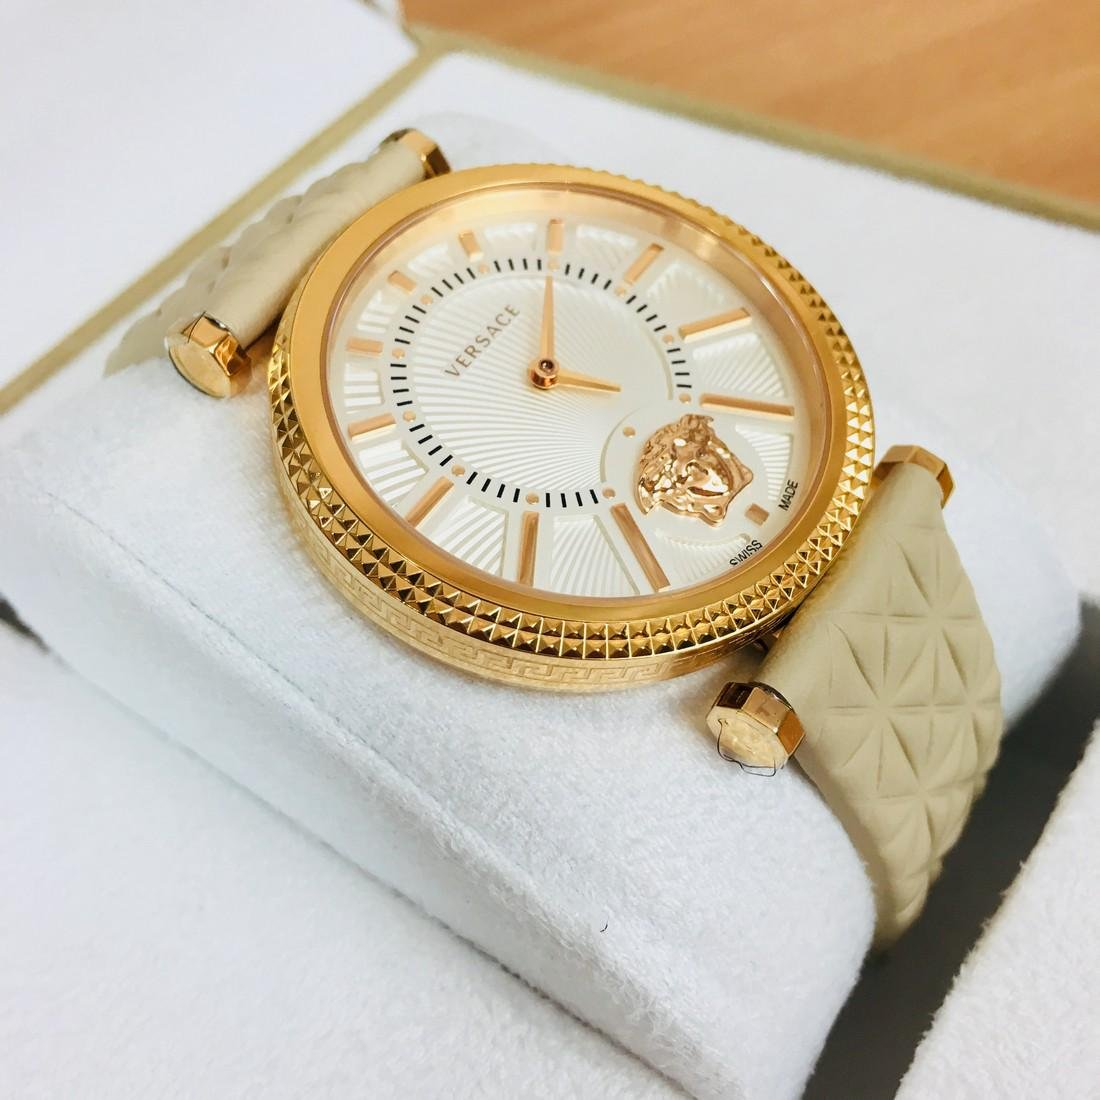 VERSACE V-HELIX Swiss Made Ladies Luxury Watch - 4